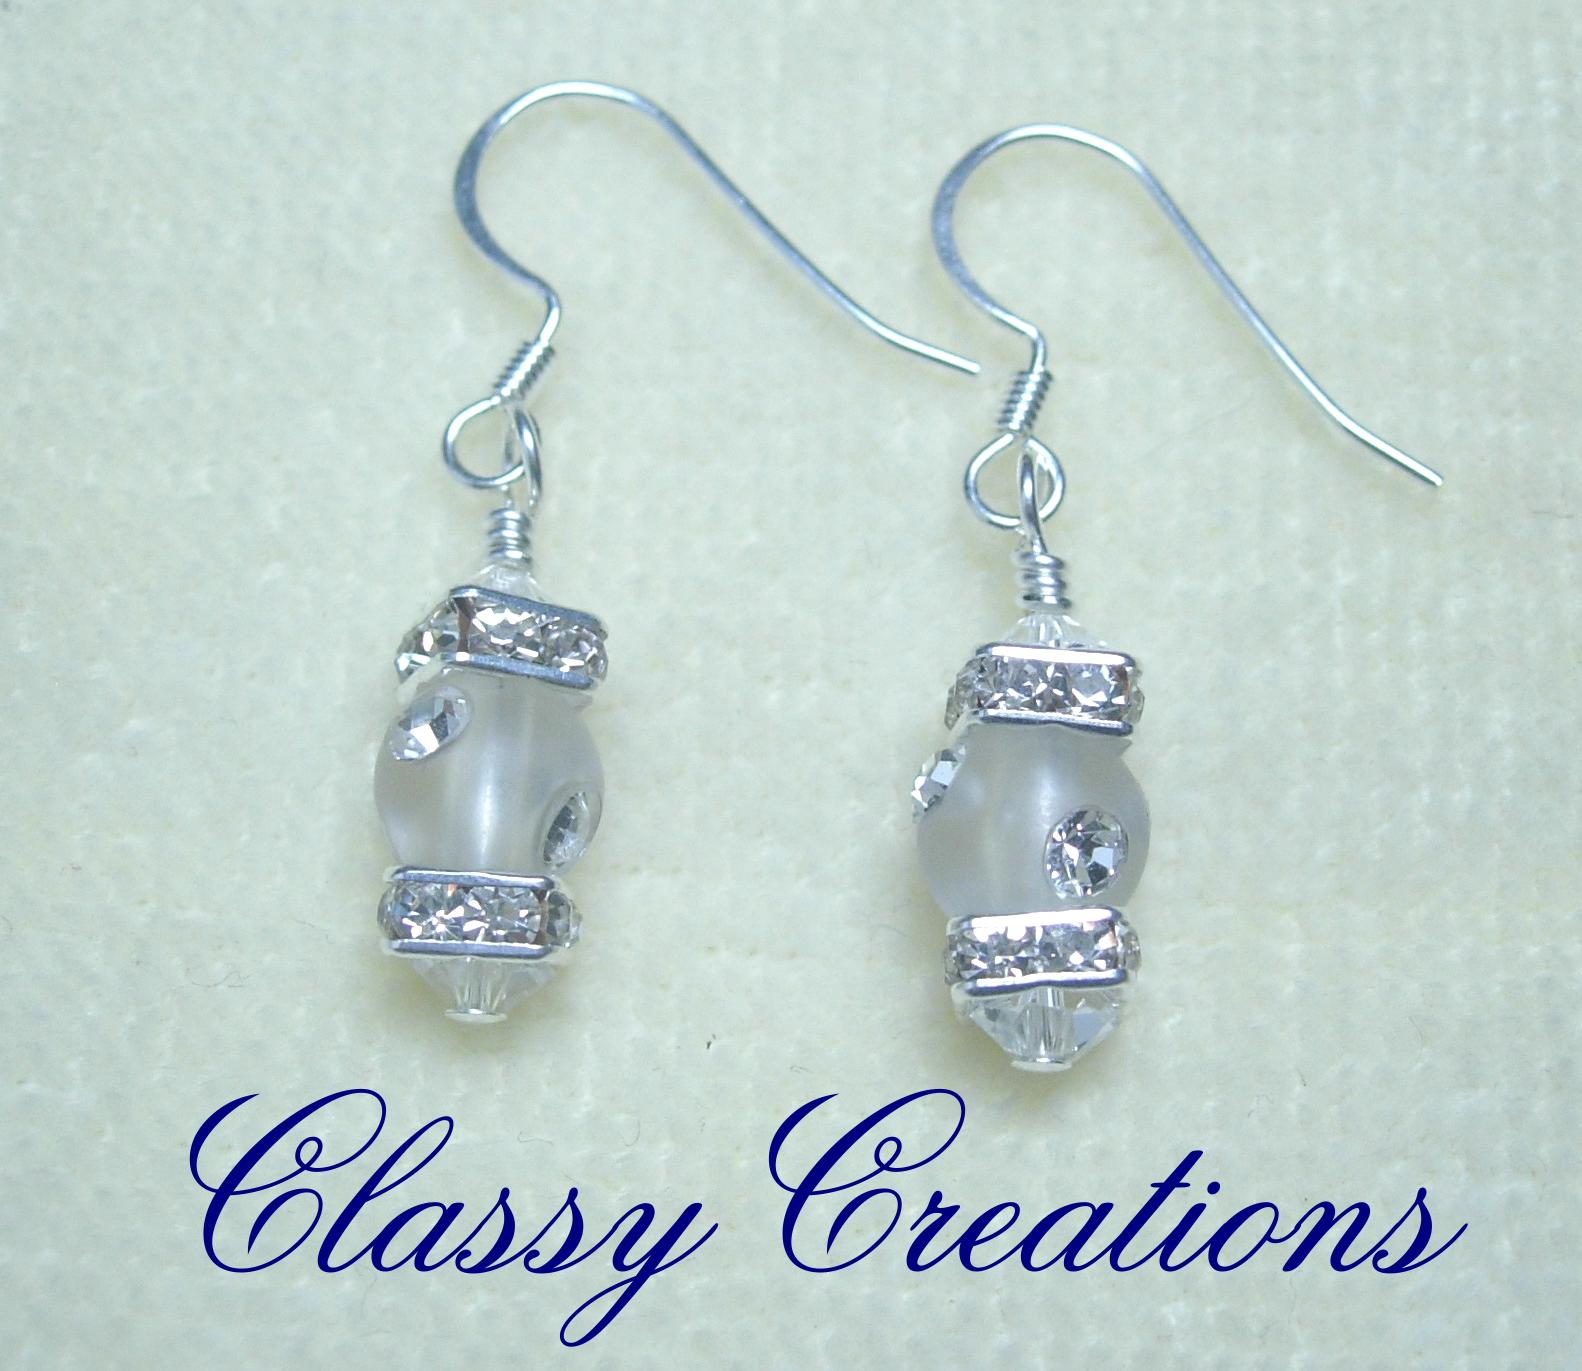 Classy Creations - Jewelry By Dawn - Earrings - Crystal